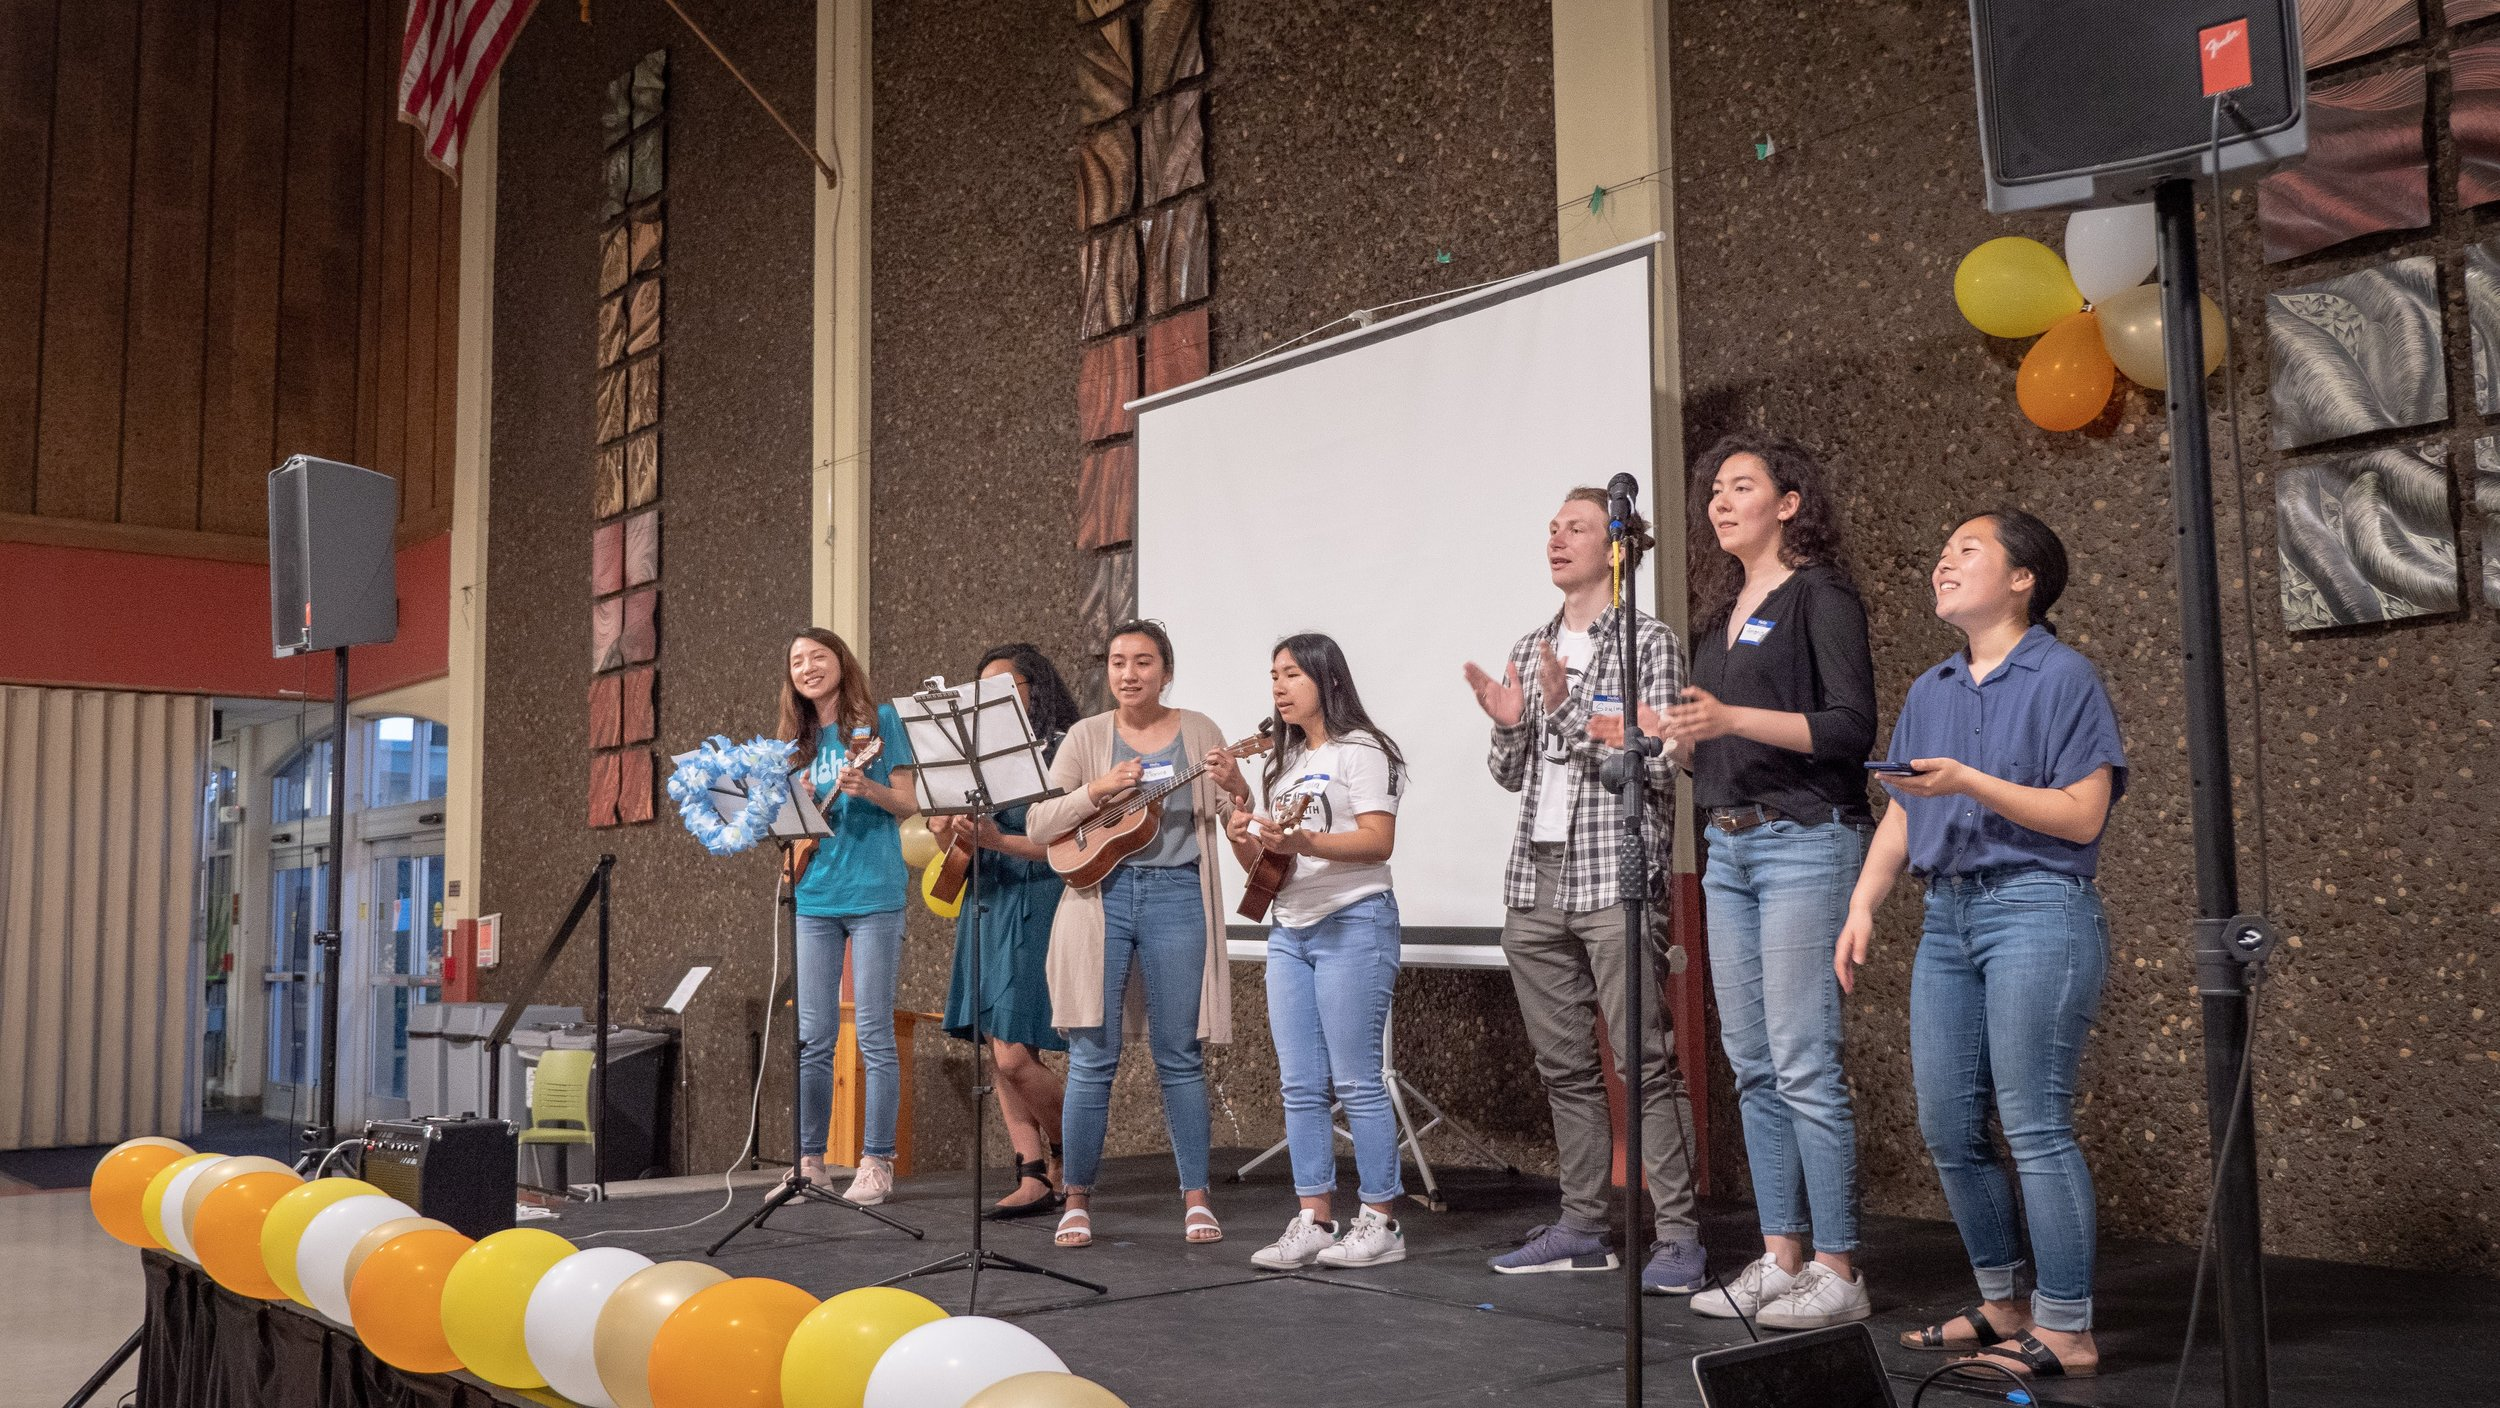 The Chabot ukulele club and CARP performed two closing songs.